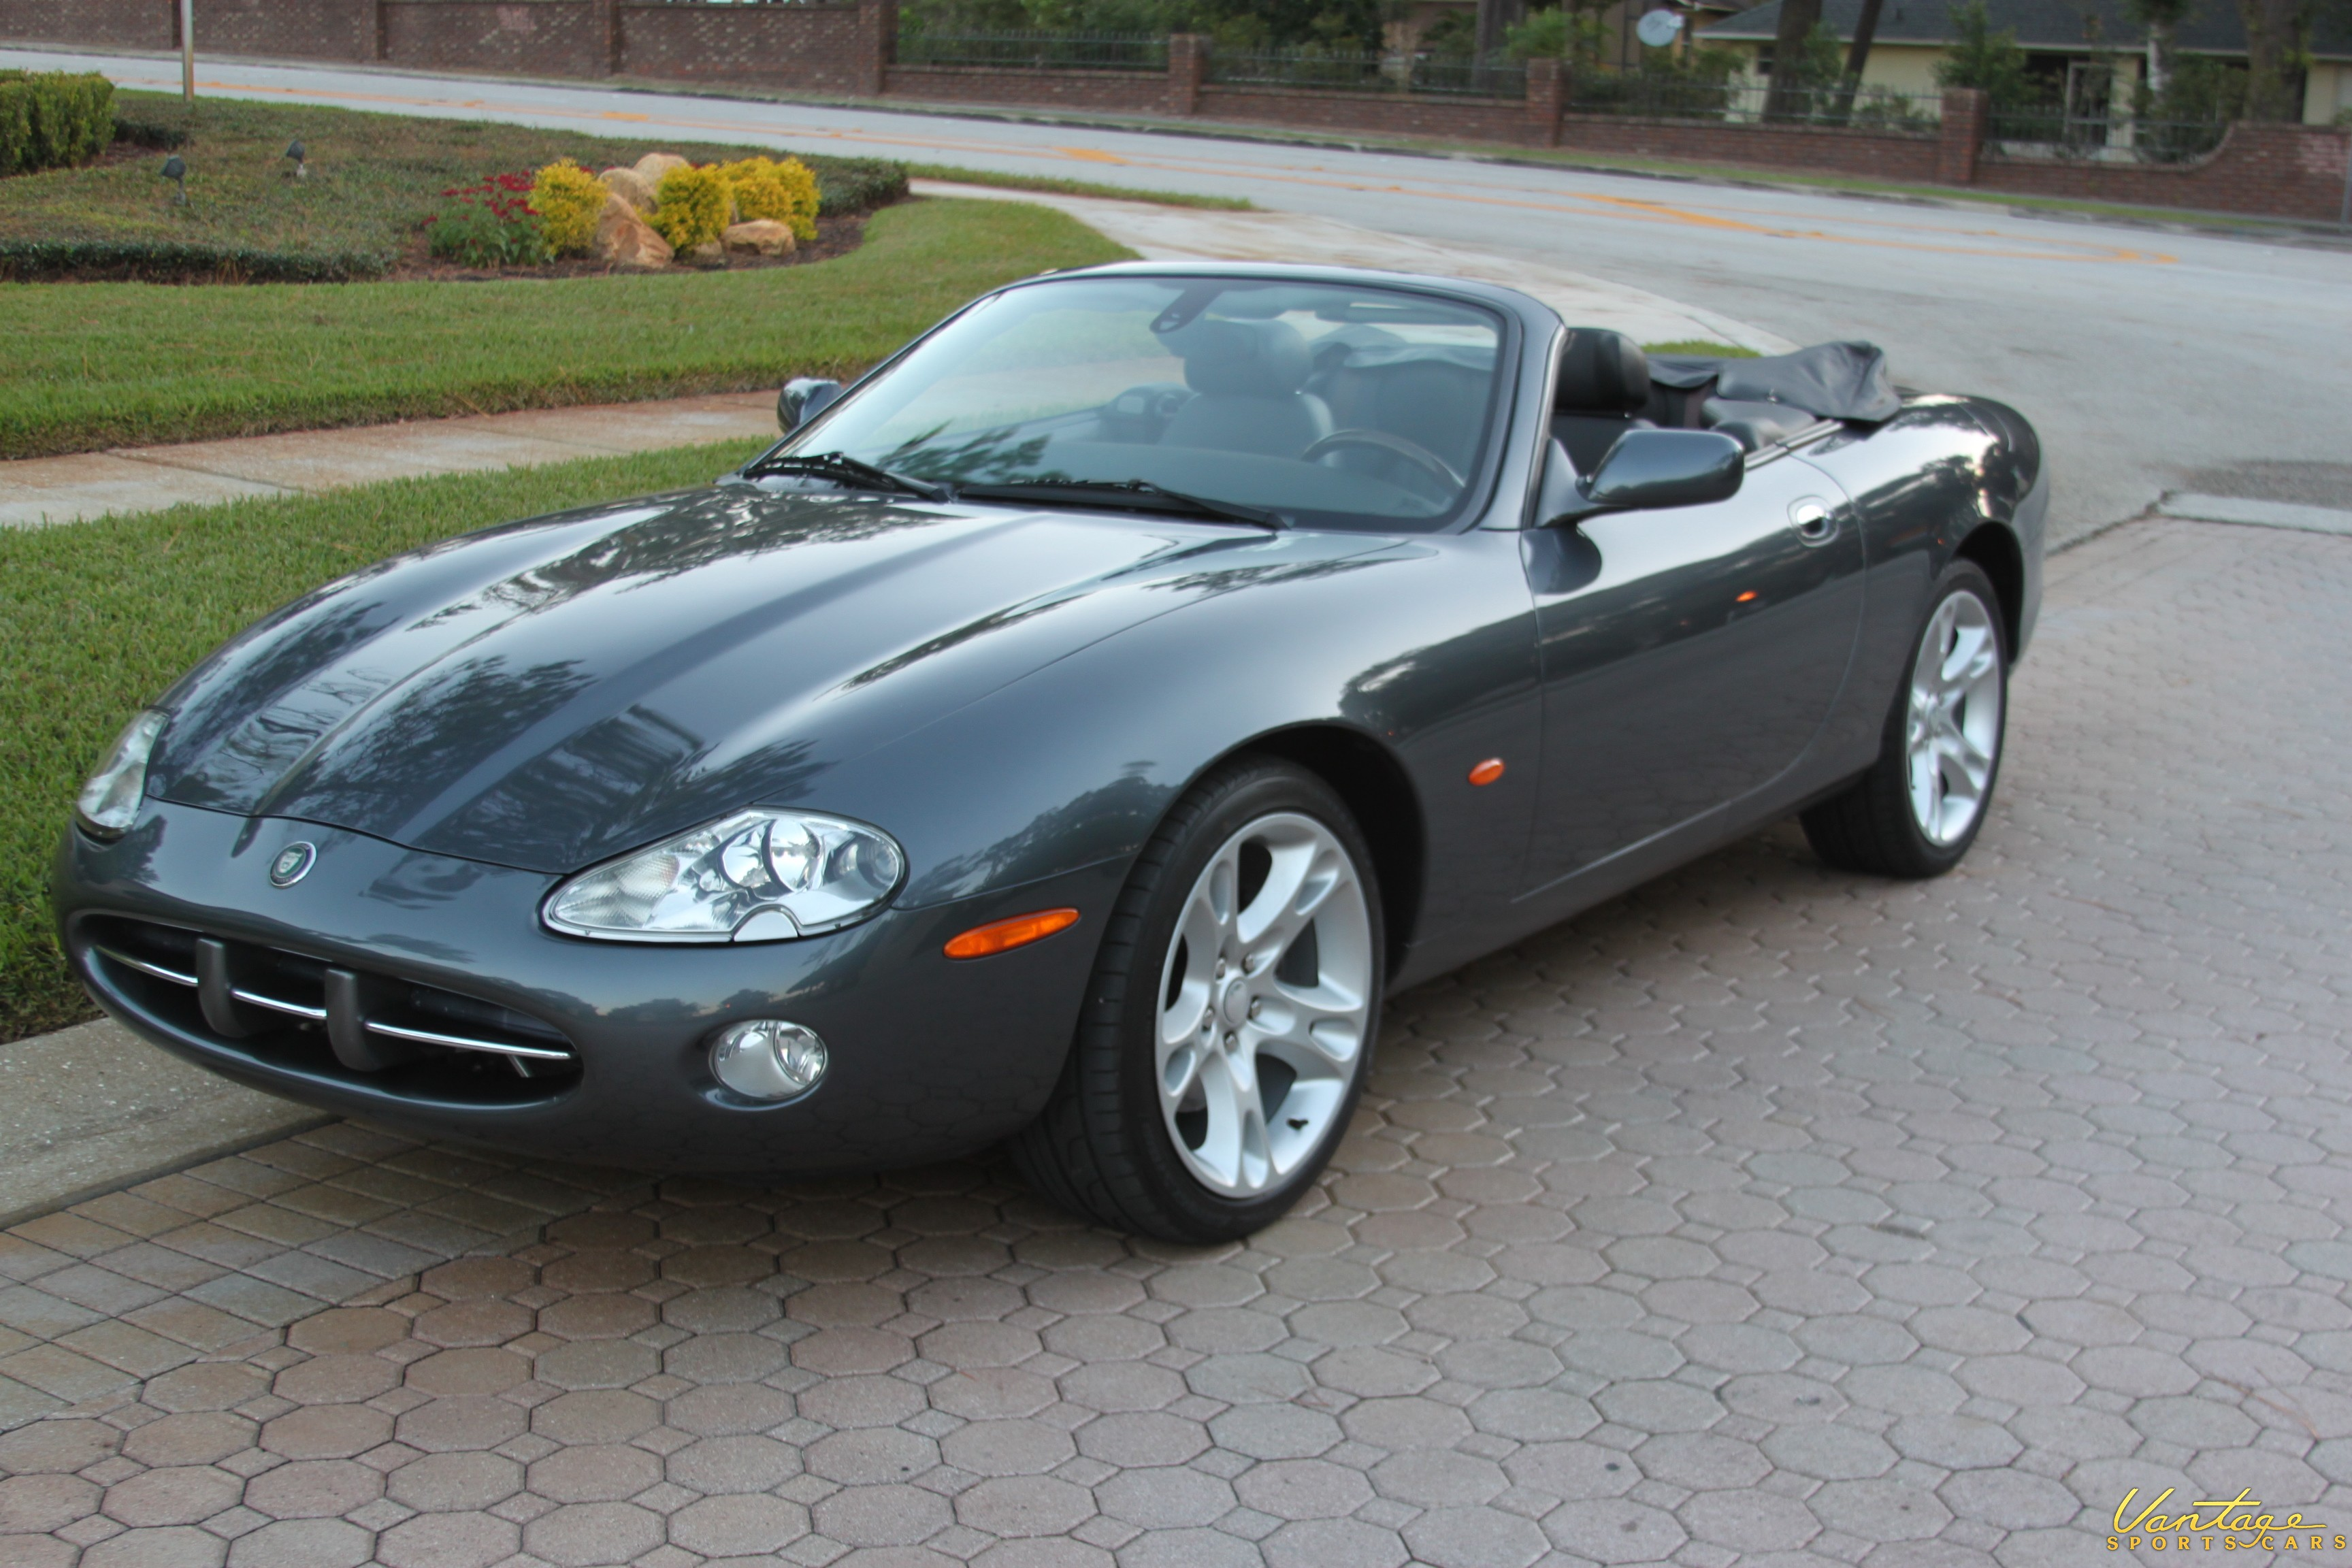 2004 jaguar xk8 convertible sold vantage sports cars. Black Bedroom Furniture Sets. Home Design Ideas